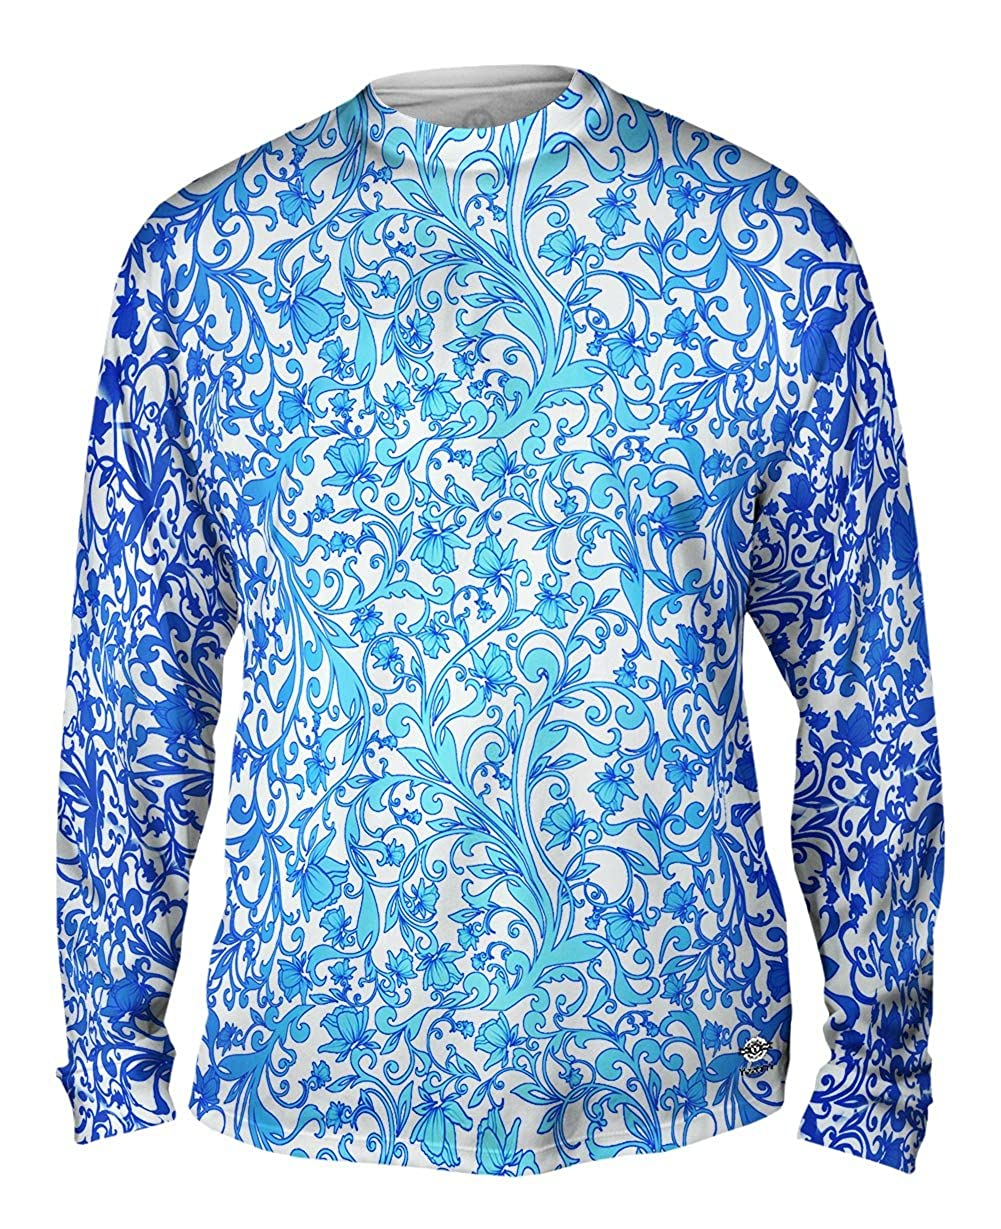 Tshirt Yizzam Swirl Flower Navy Turquoise Pattern Mens Long Sleeve